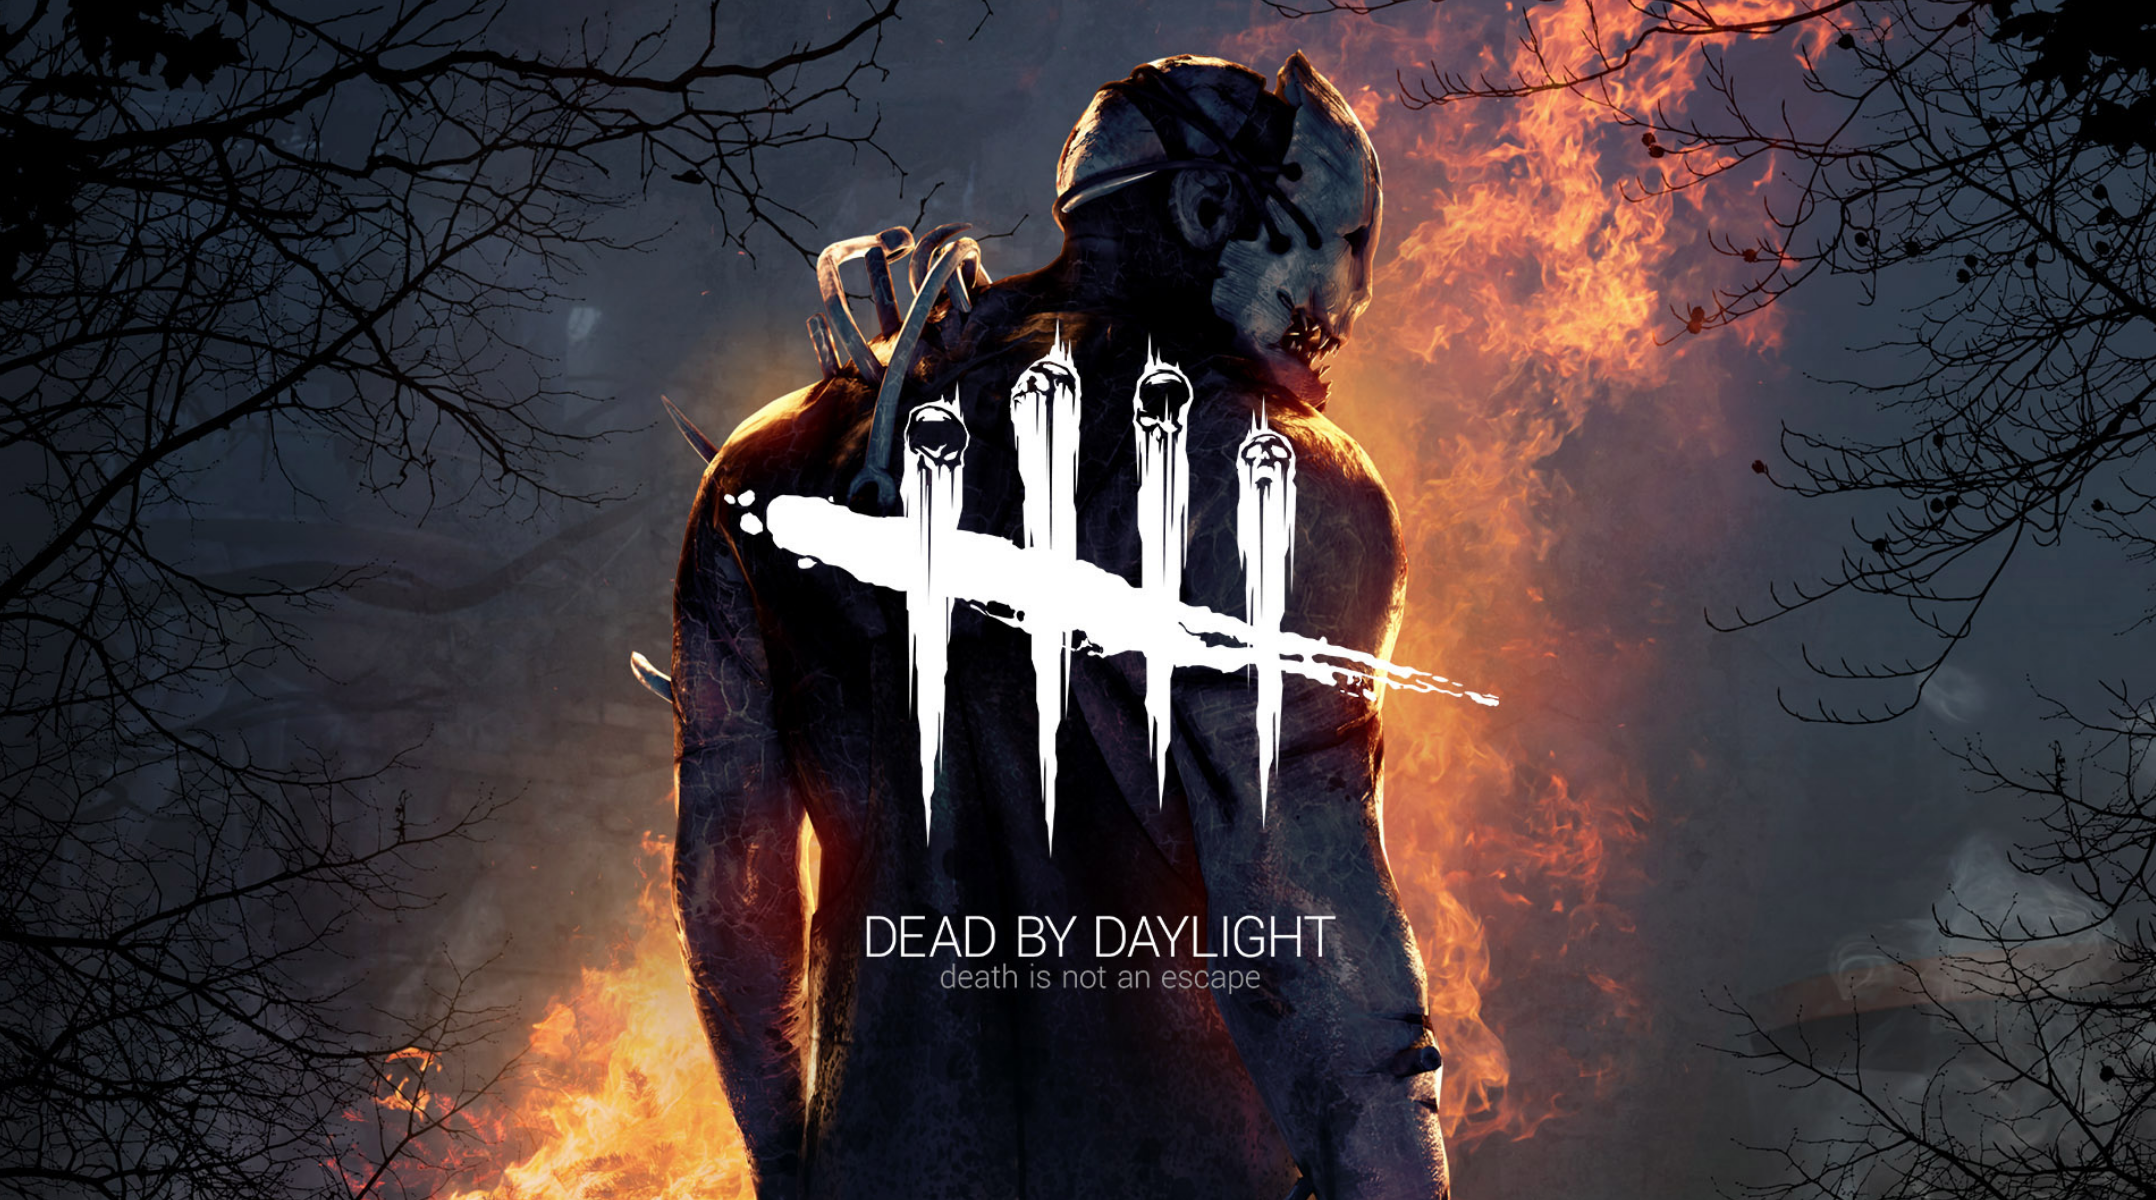 All Dead By Daylight killers, ranked